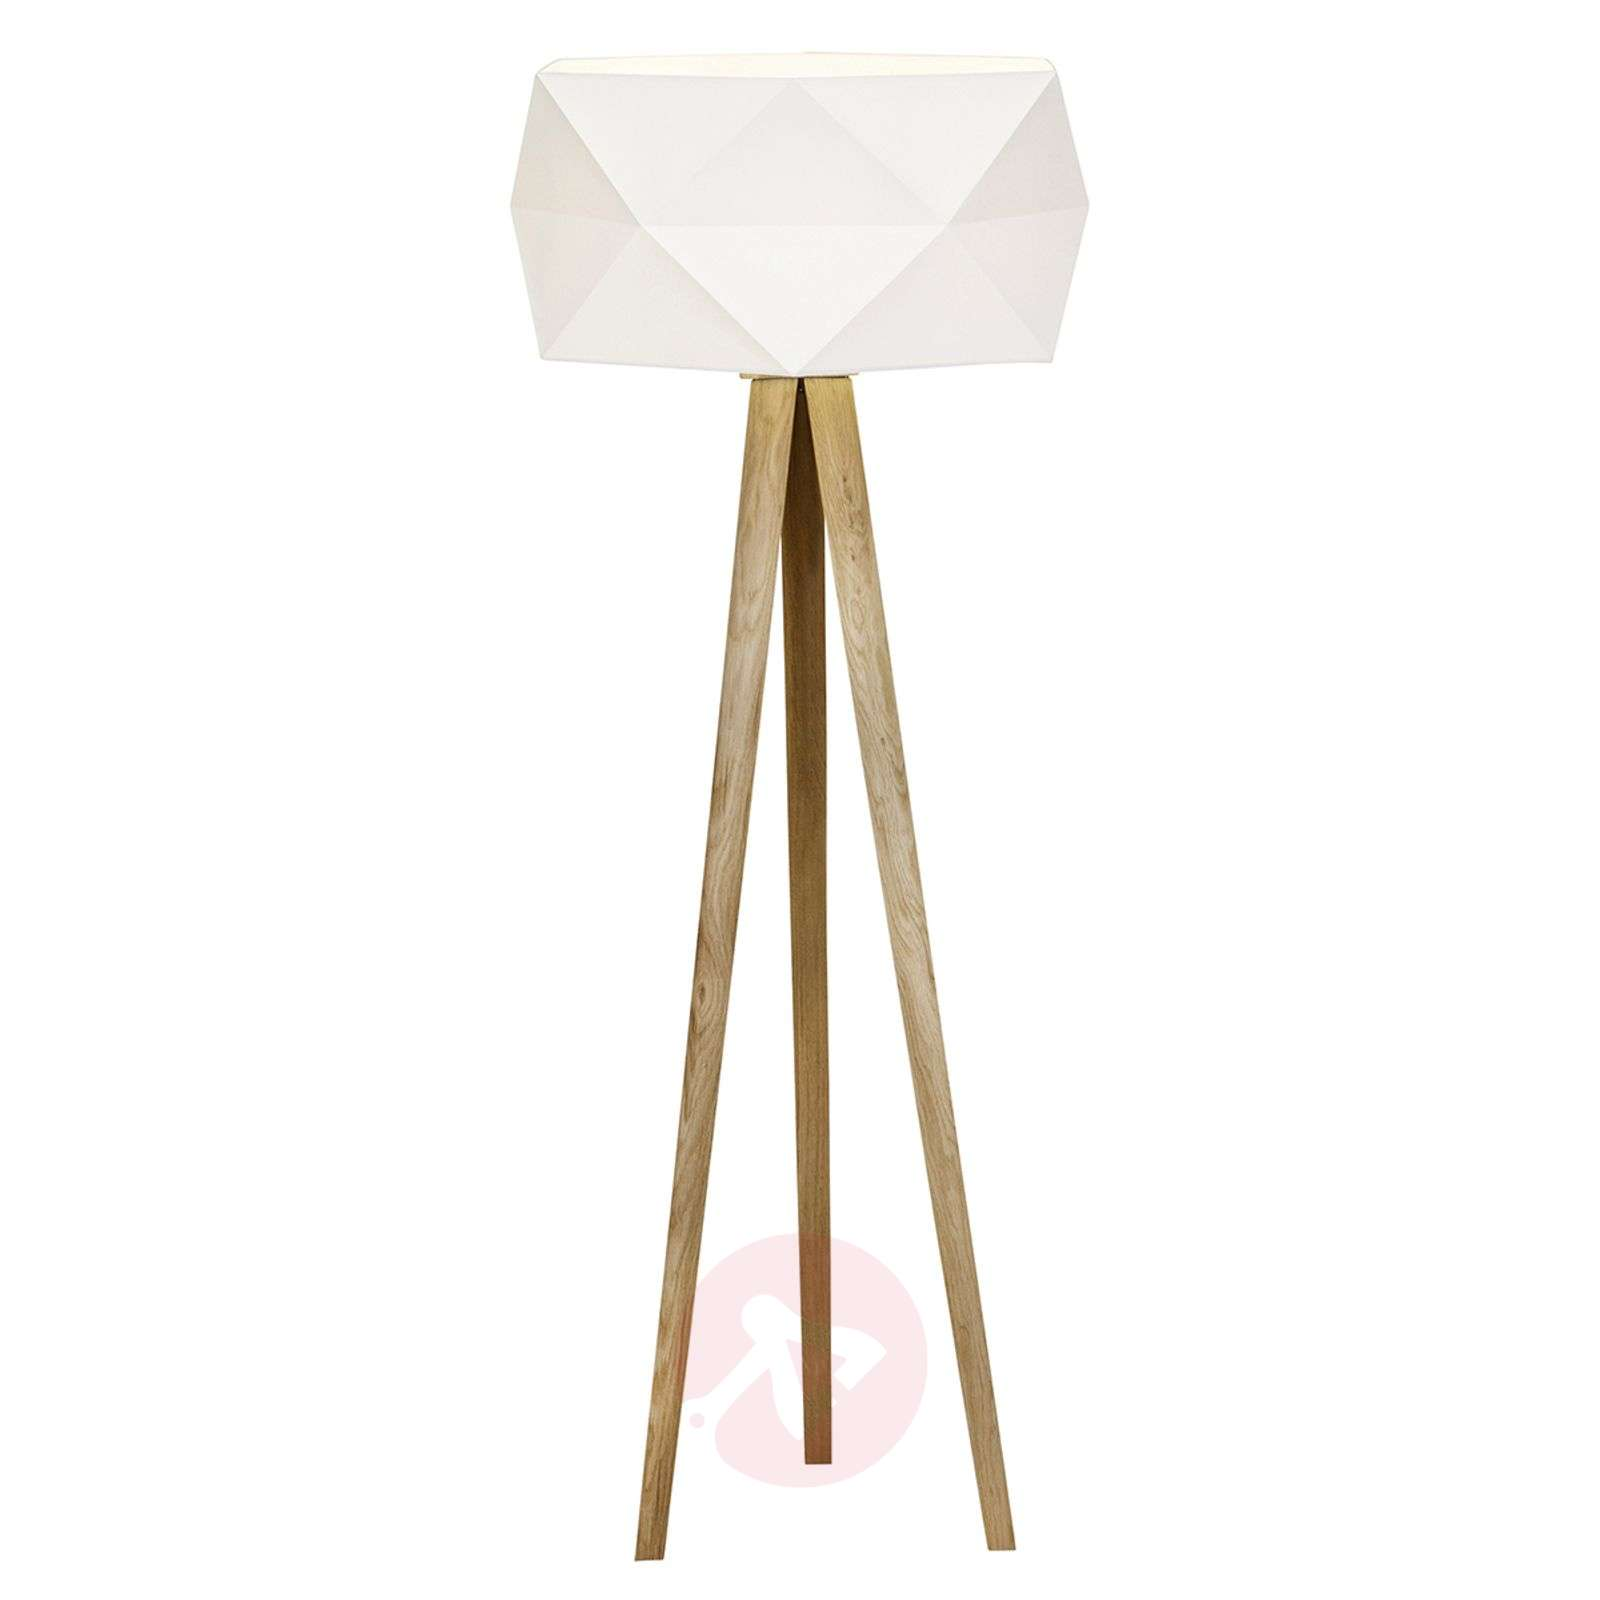 Tripod floor lamp Polygon with fabric lampshade